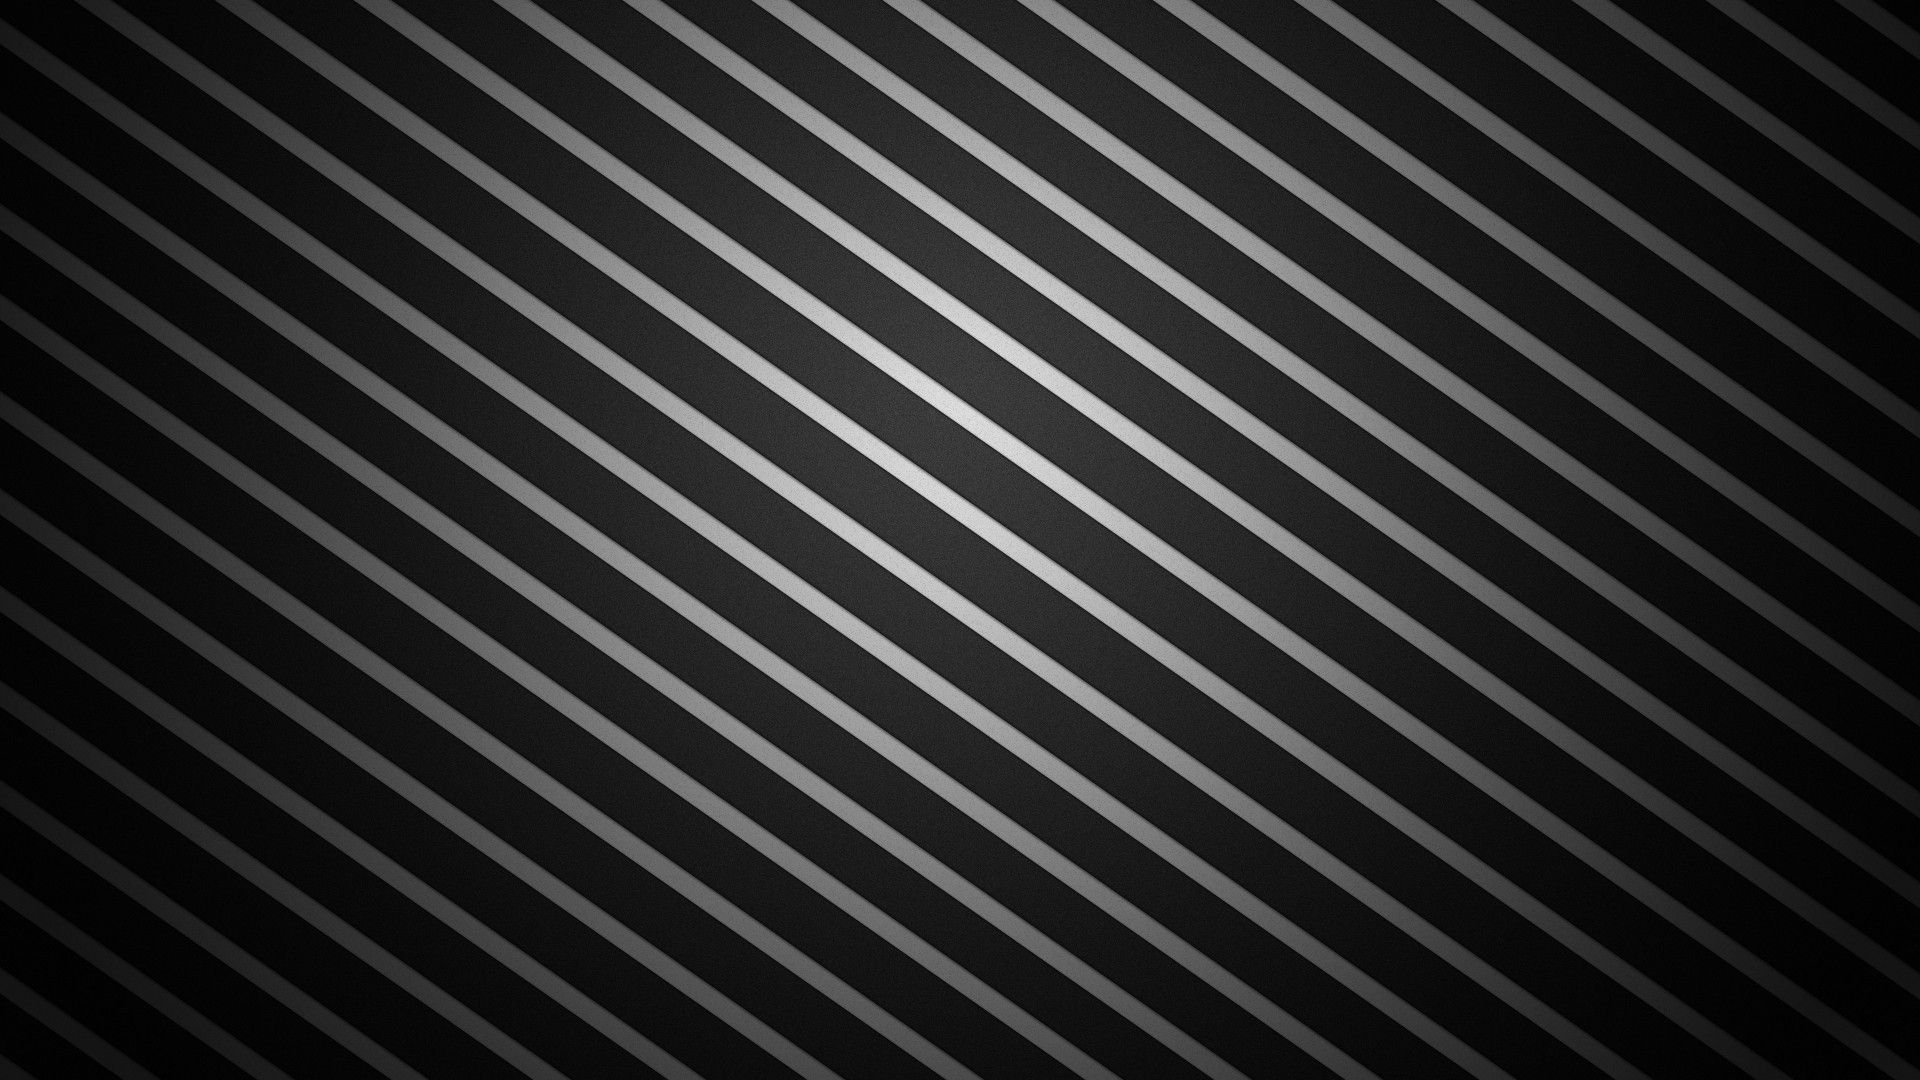 Black And White Image Hd Black Texture Background Black And Silver Wallpaper Black And White Wallpaper